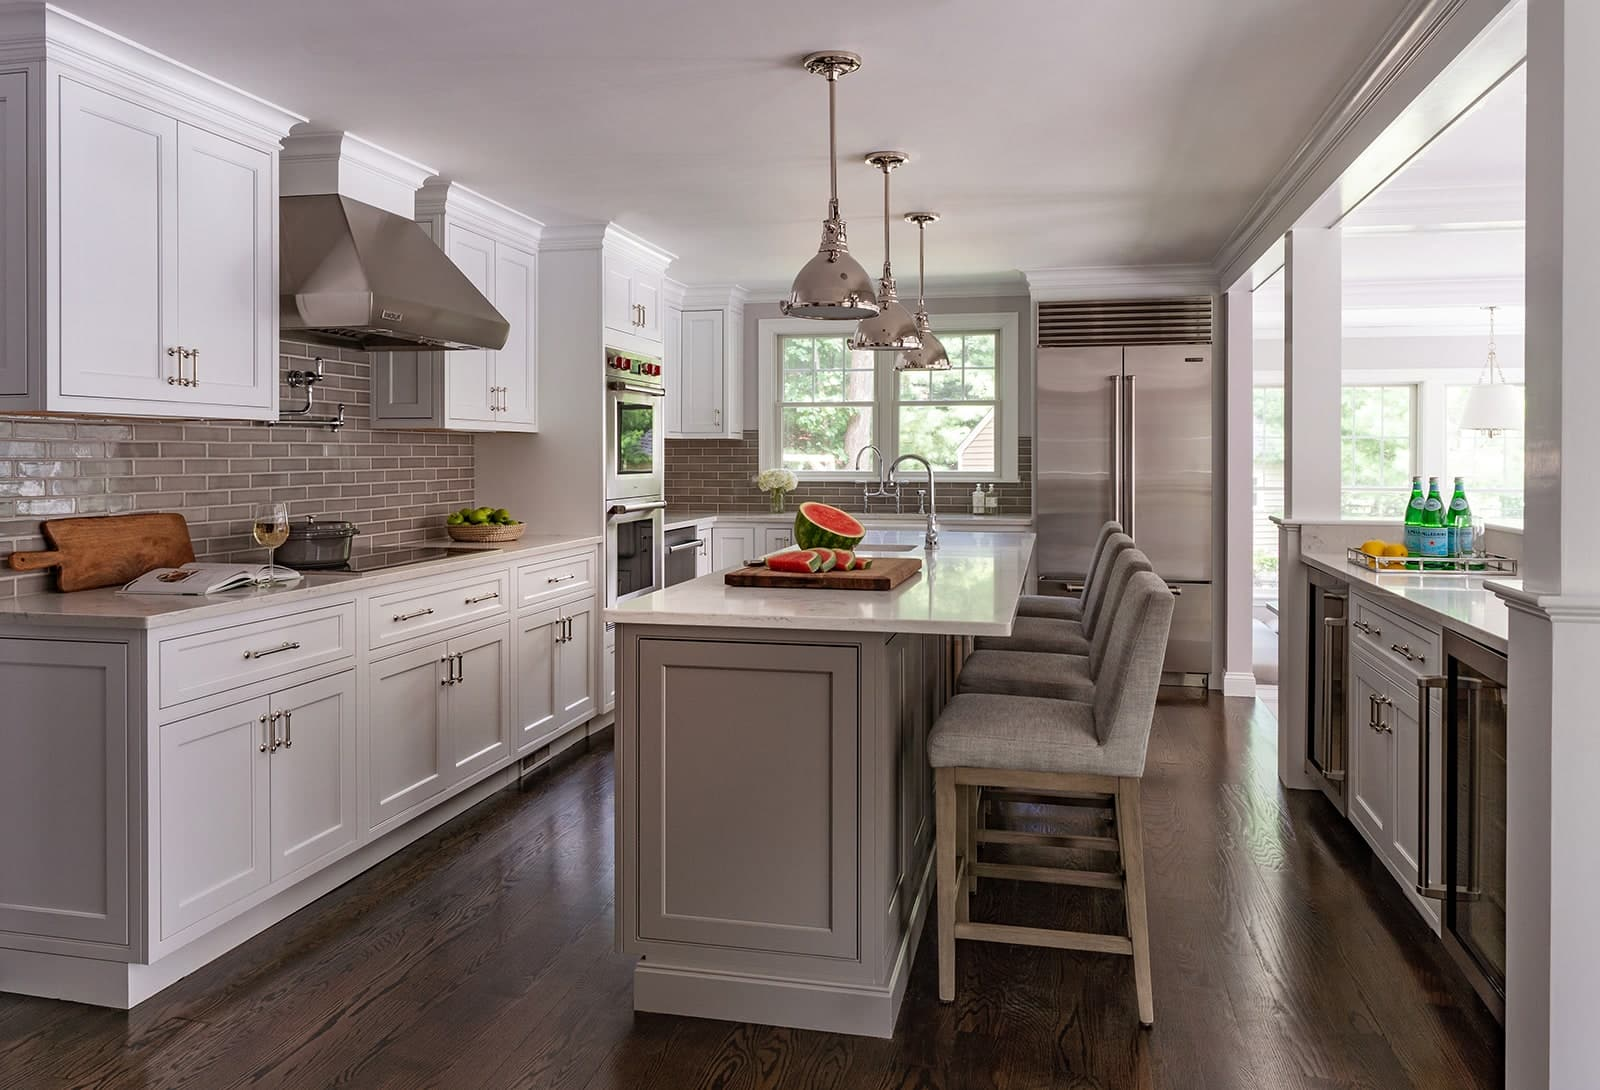 North Shore Tranquility Interiors Middleton MA Kitchen